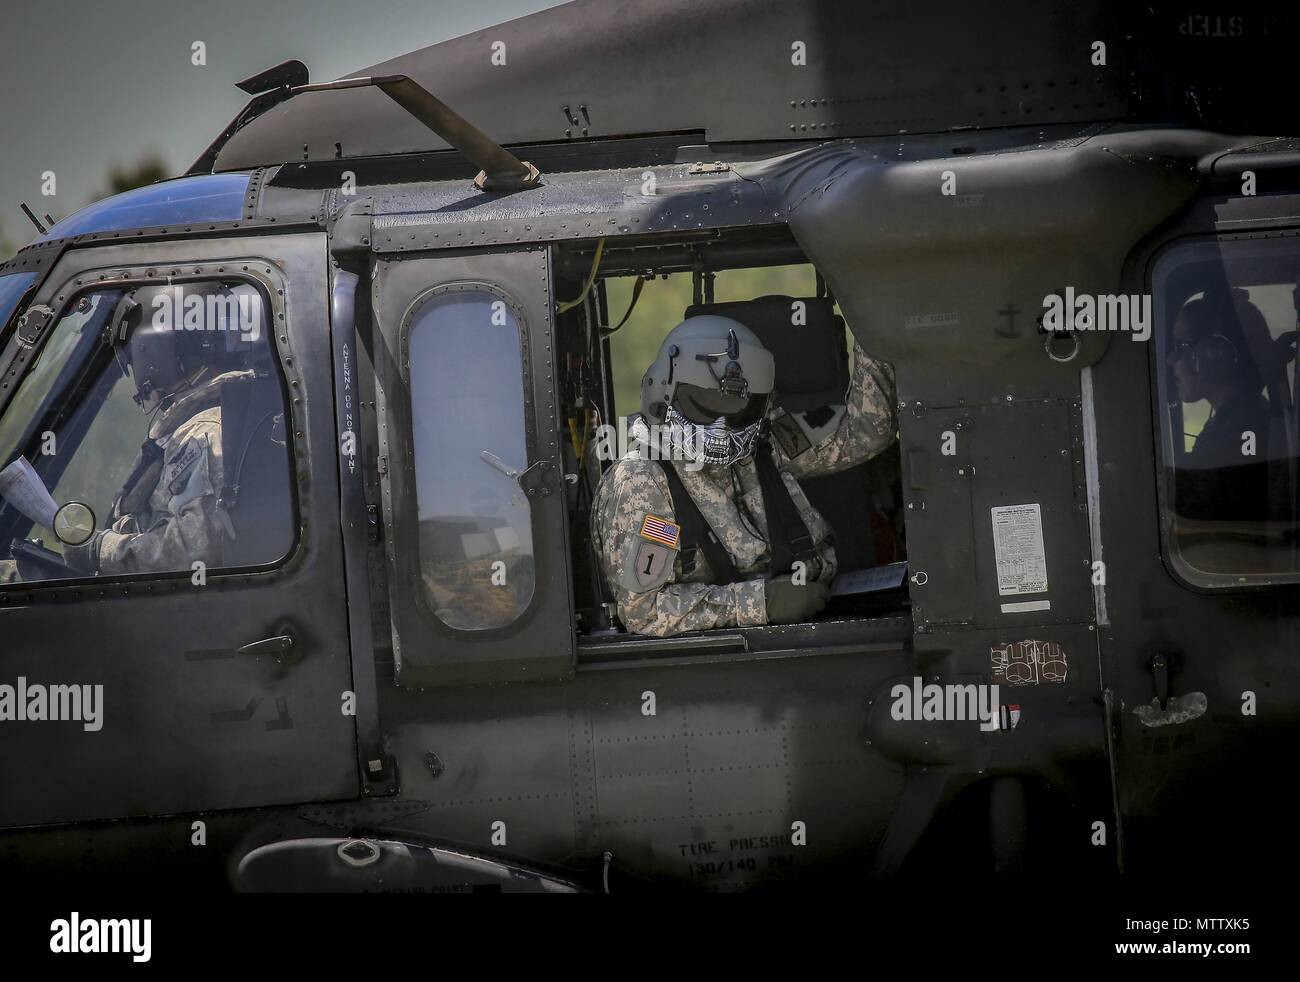 New Jersey Army National Guard Staff Sgt. John Panepinto, a UH-60L Black Hawk helicopter crew chief from the 1st Assault Helicopter Battalion, 150th Aviation Regiment sits in the gunner seat for a flight at Joint Base McGuire-Dix-Lakehurst, N.J. May 15, 2018, May 15, 2018. (U.S. Air National Guard photo by Master Sgt. Matt Hecht). () - Stock Image